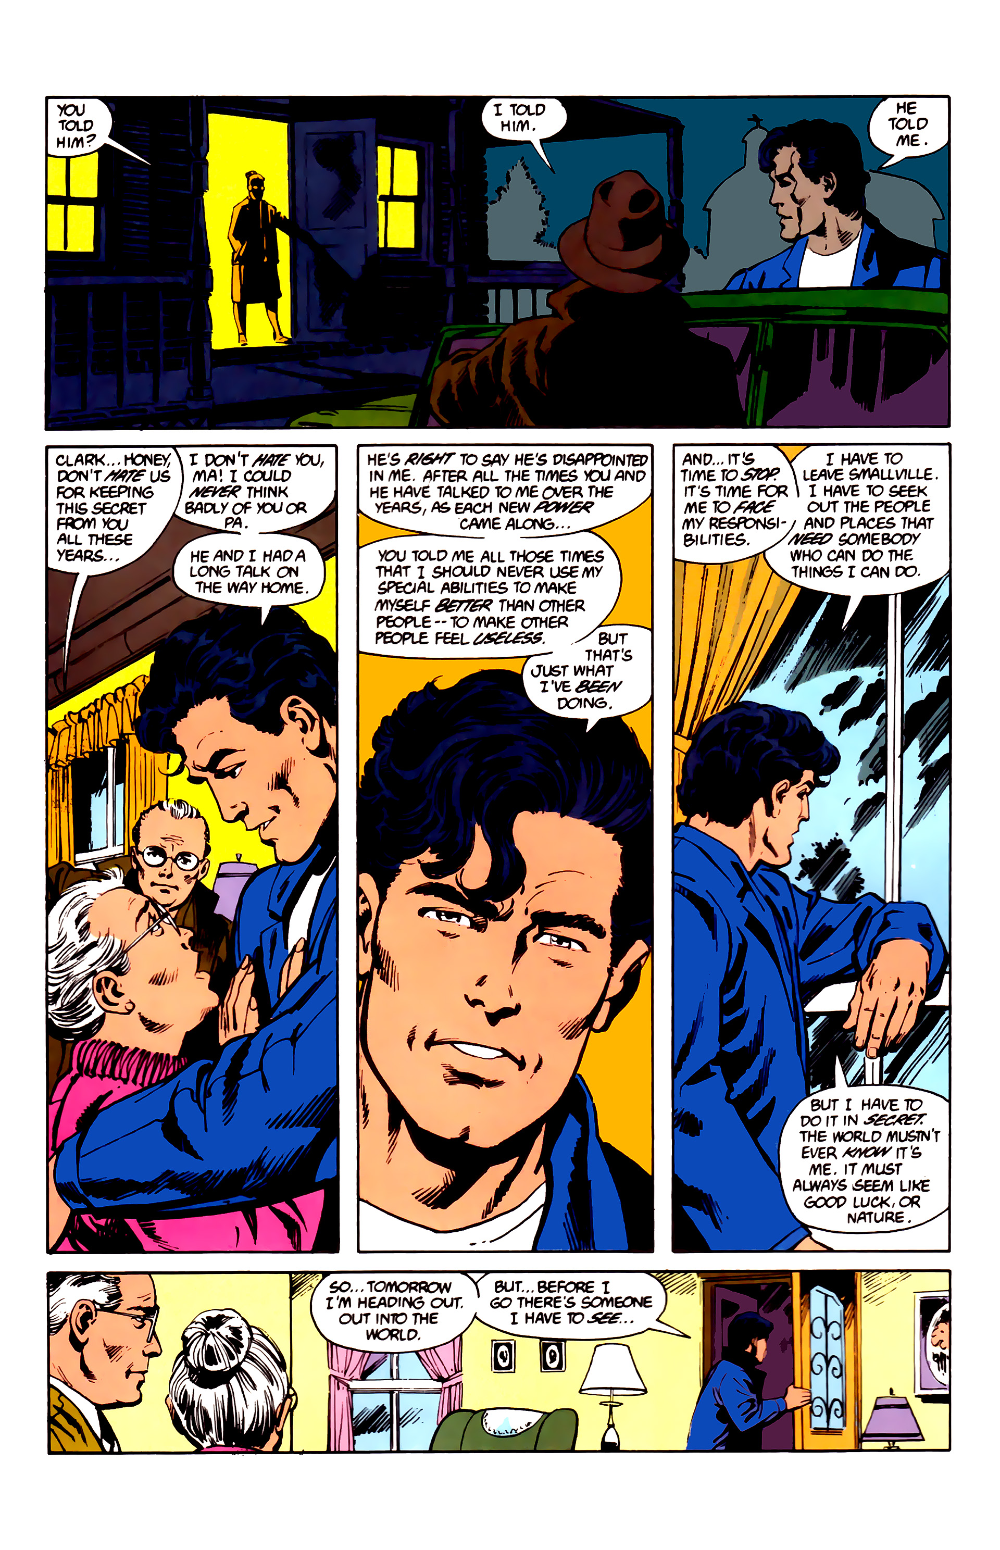 The Man Of Steel 1986 Issue 1 Read The Man Of Steel 1986 Issue 1 Comic Online In High Quality Superman Comic Comics Man Of Steel